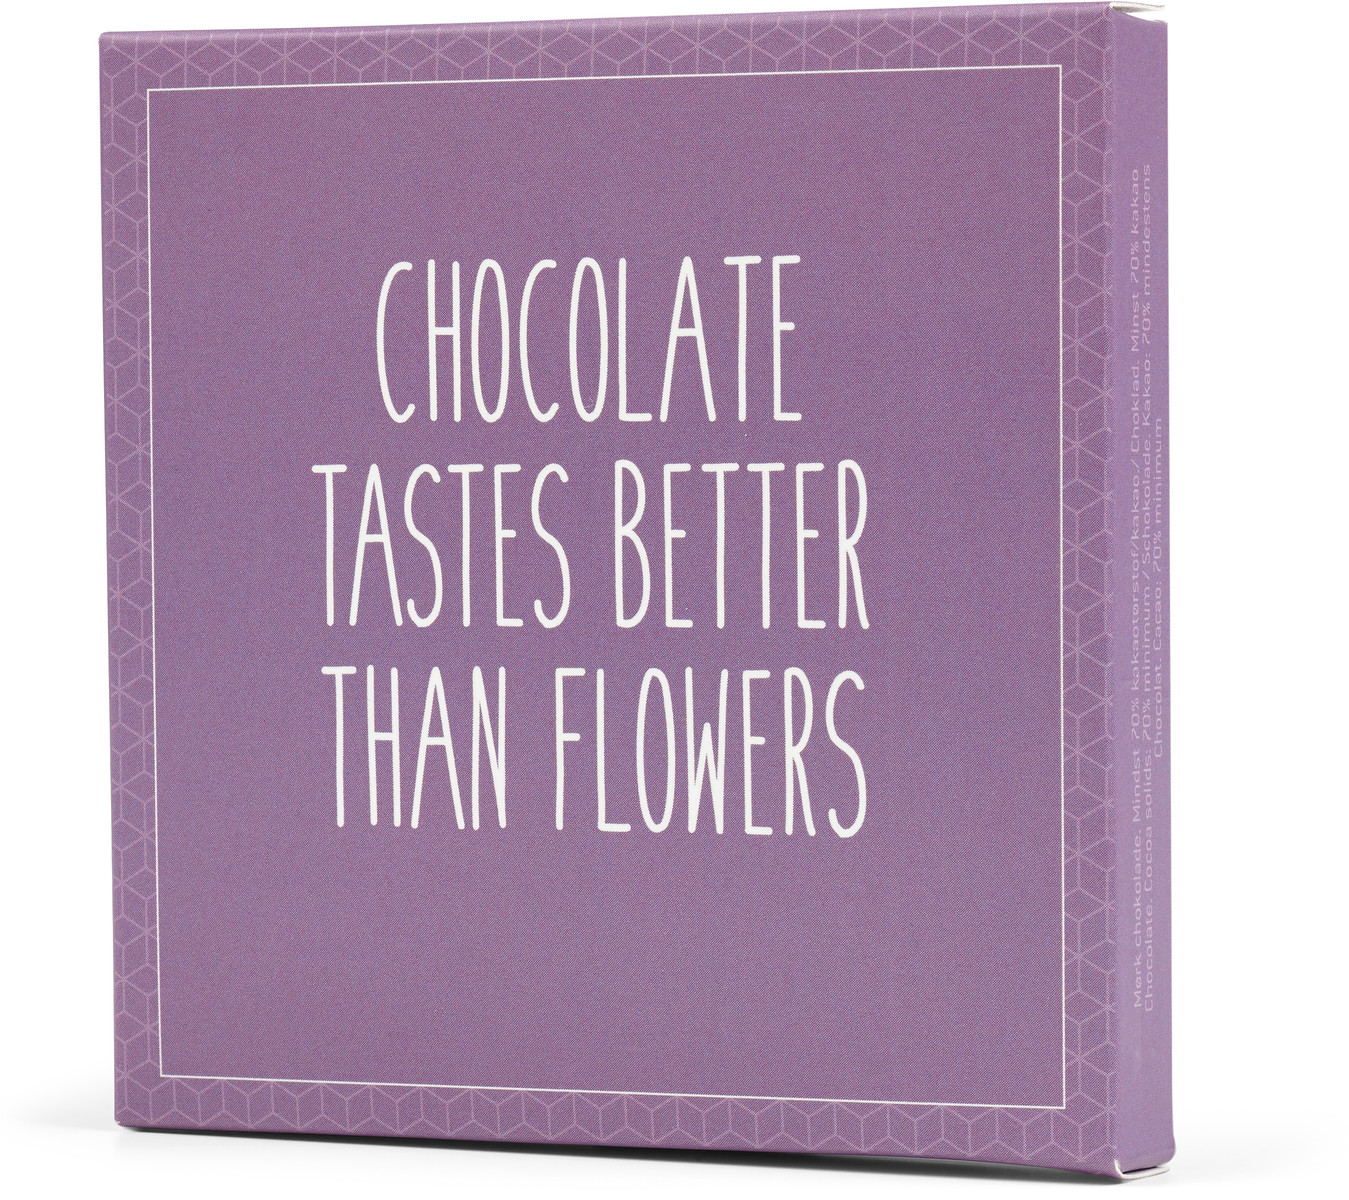 Altinus Vin Konnerup & Co chokolatier Chocolate tastes better than flowers